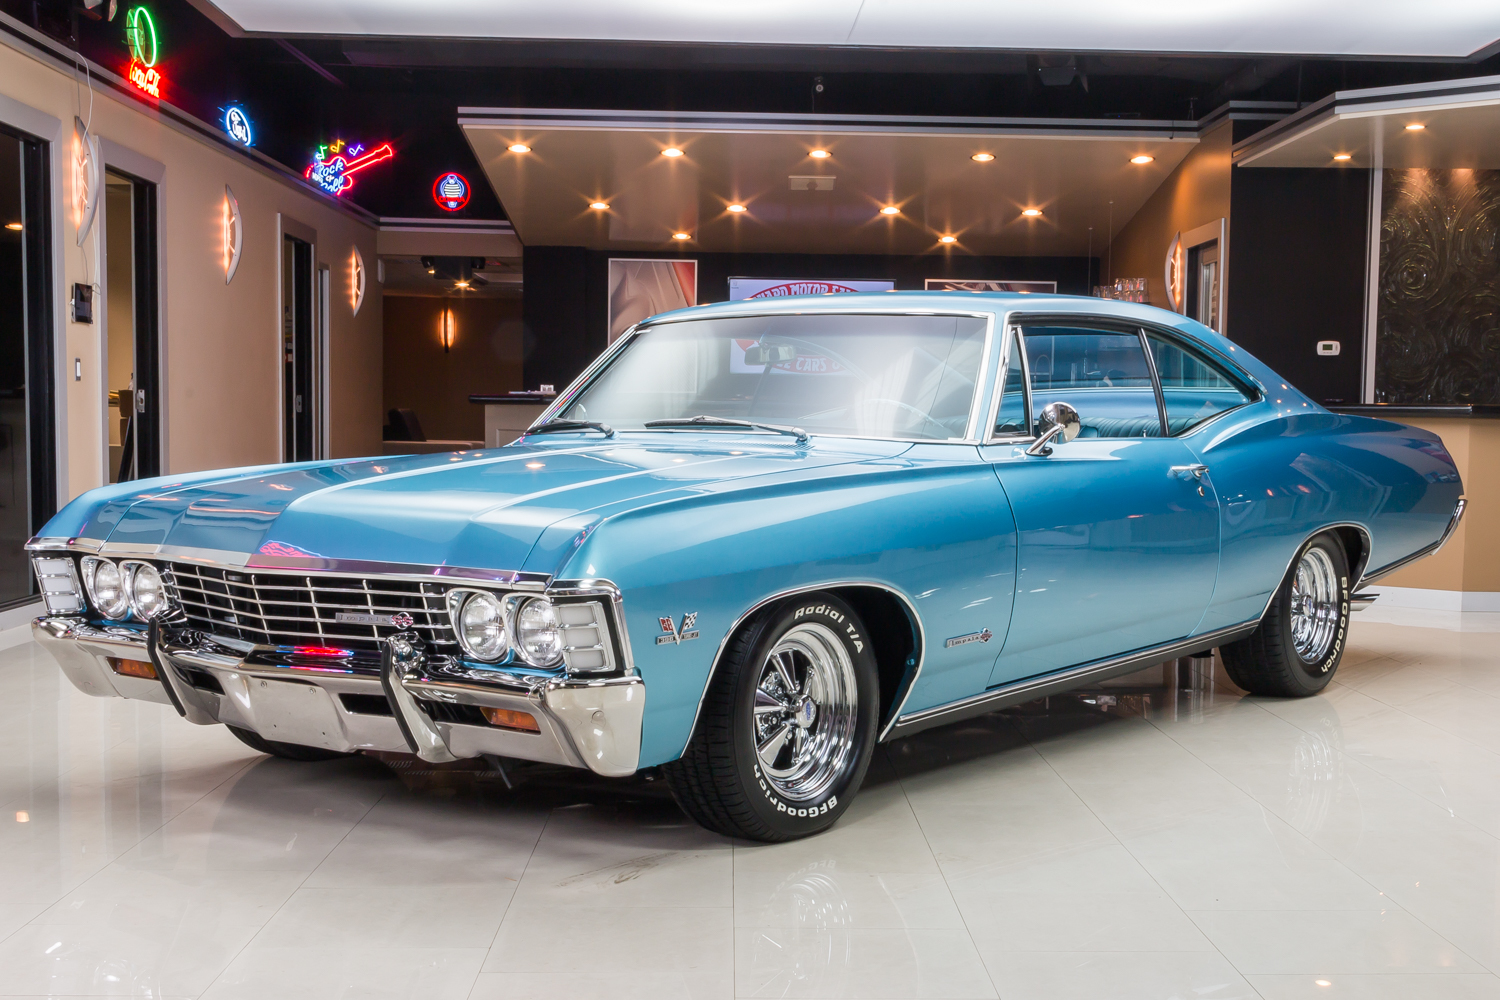 Vin Number Indian Cars >> 1967 Chevrolet Impala | Classic Cars for Sale Michigan: Muscle & Old Cars | Vanguard Motor Sales